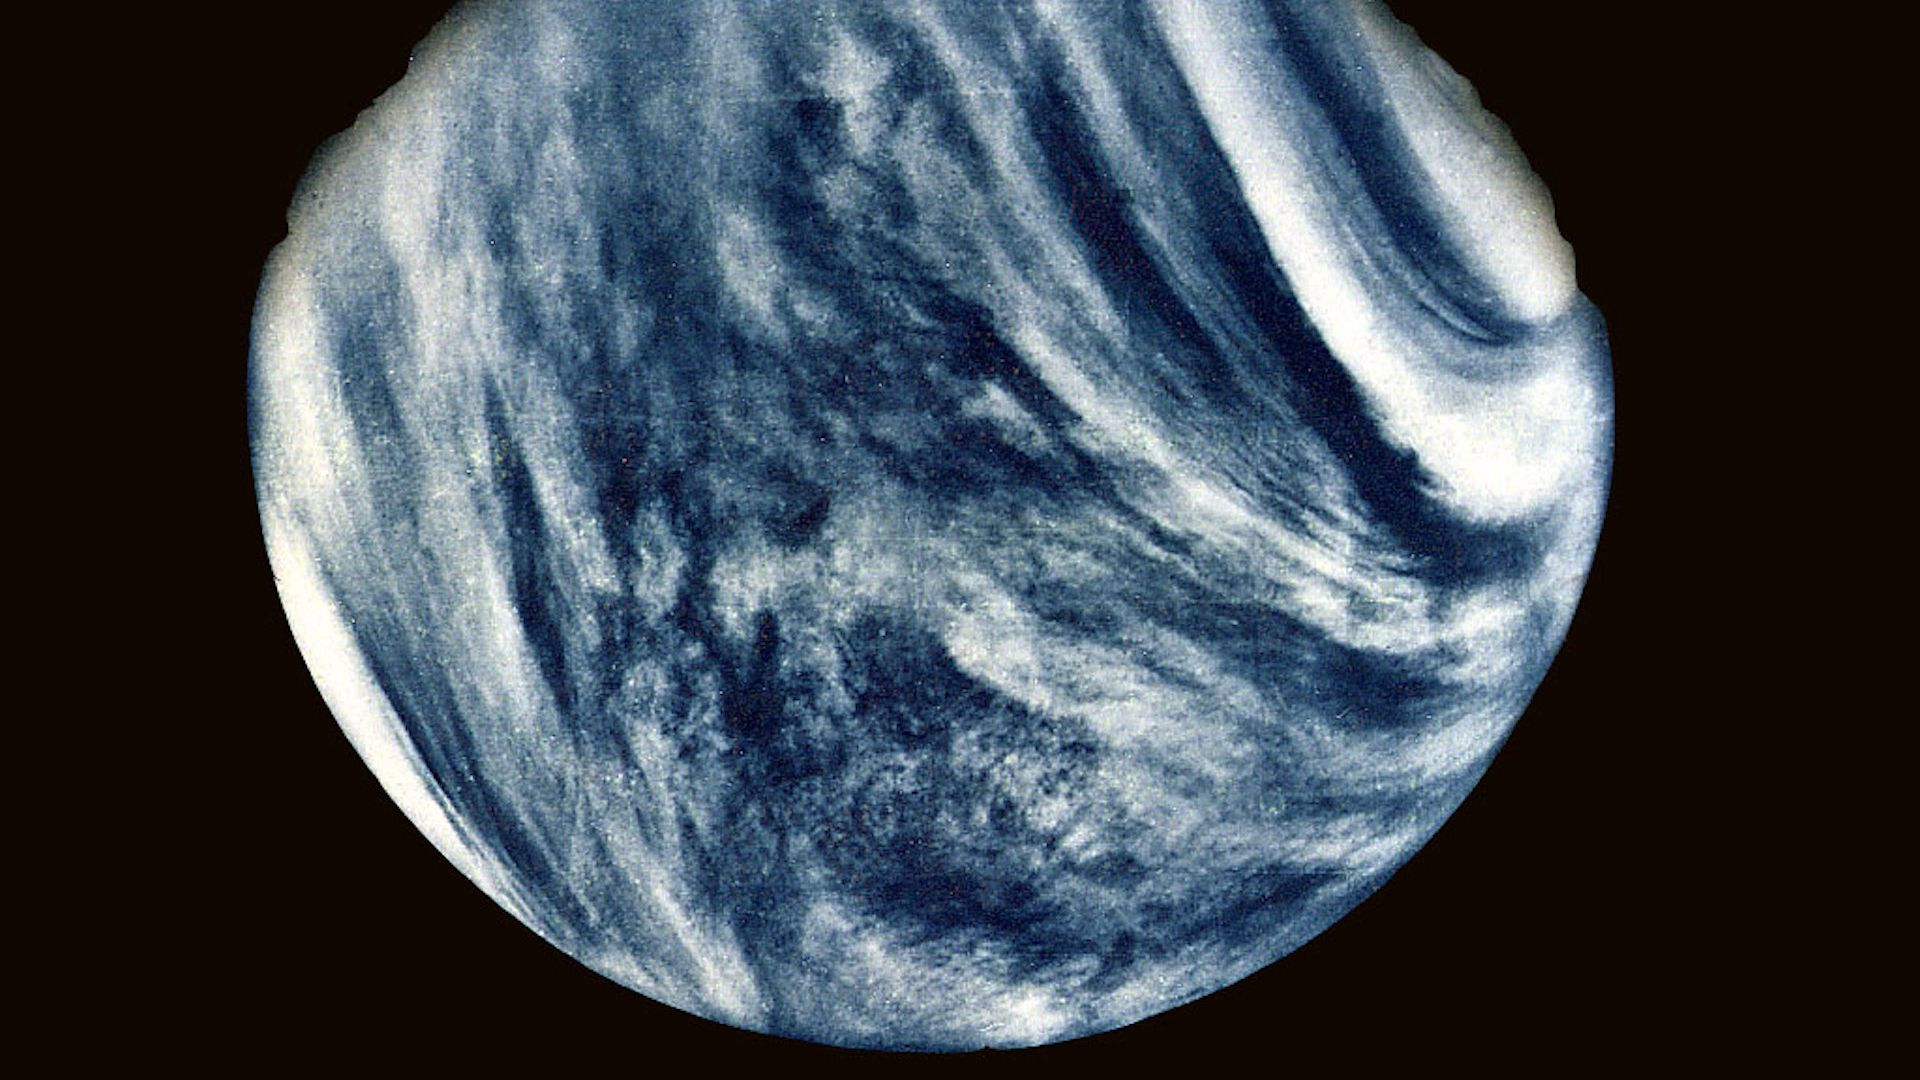 Venus as seen by Mariner 10.